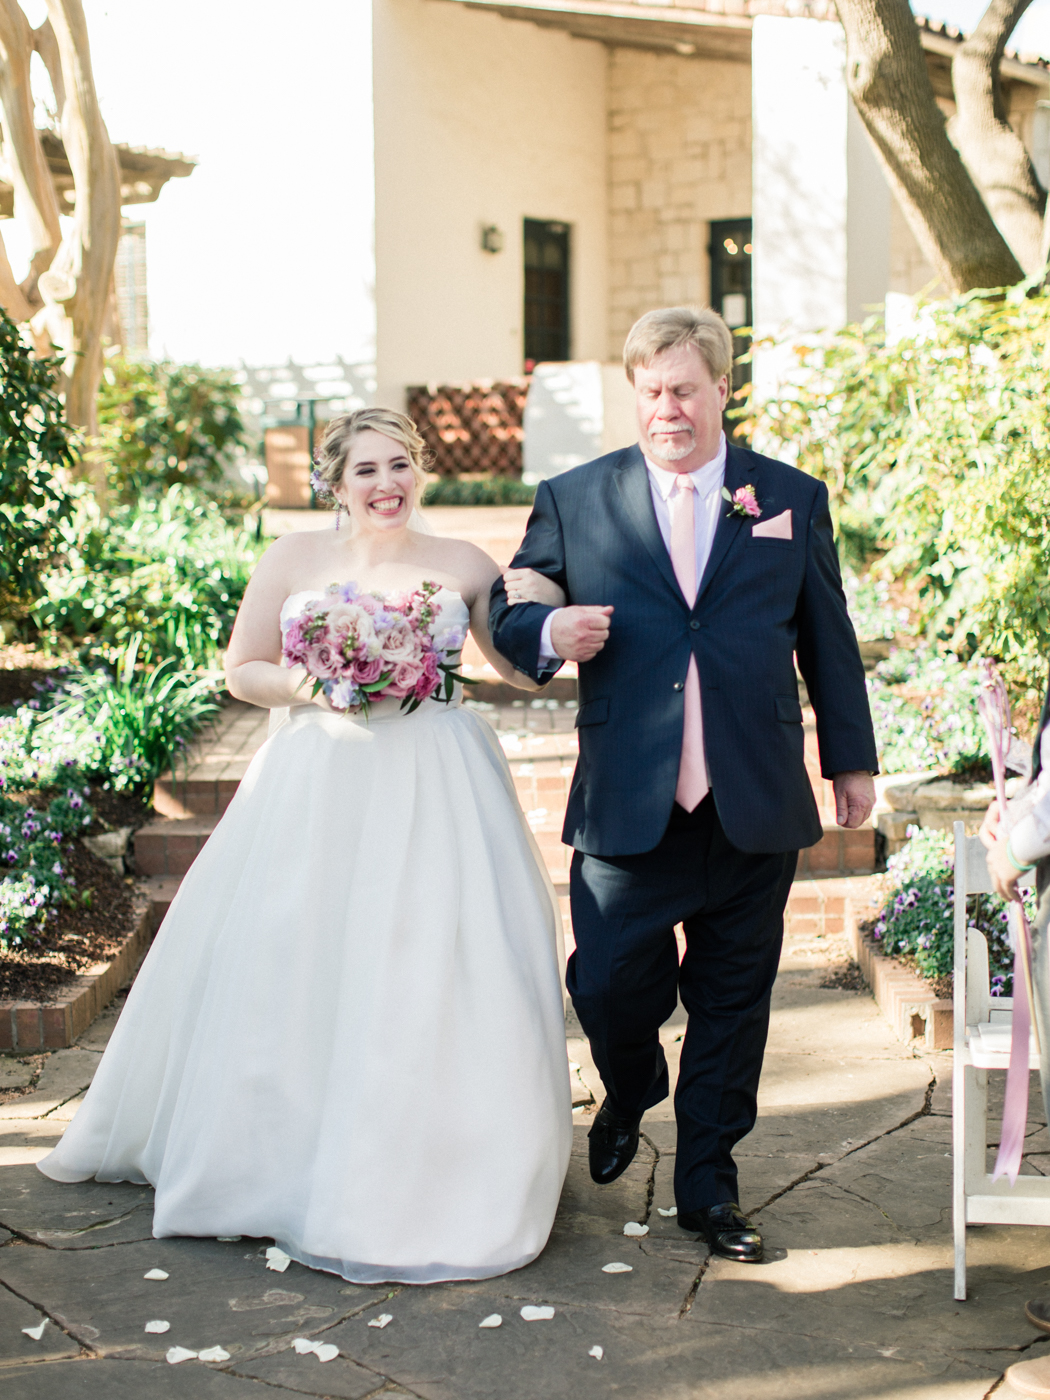 Dallas Arboretum & Botanical Garden Wedding Photos - Natural Light Photography